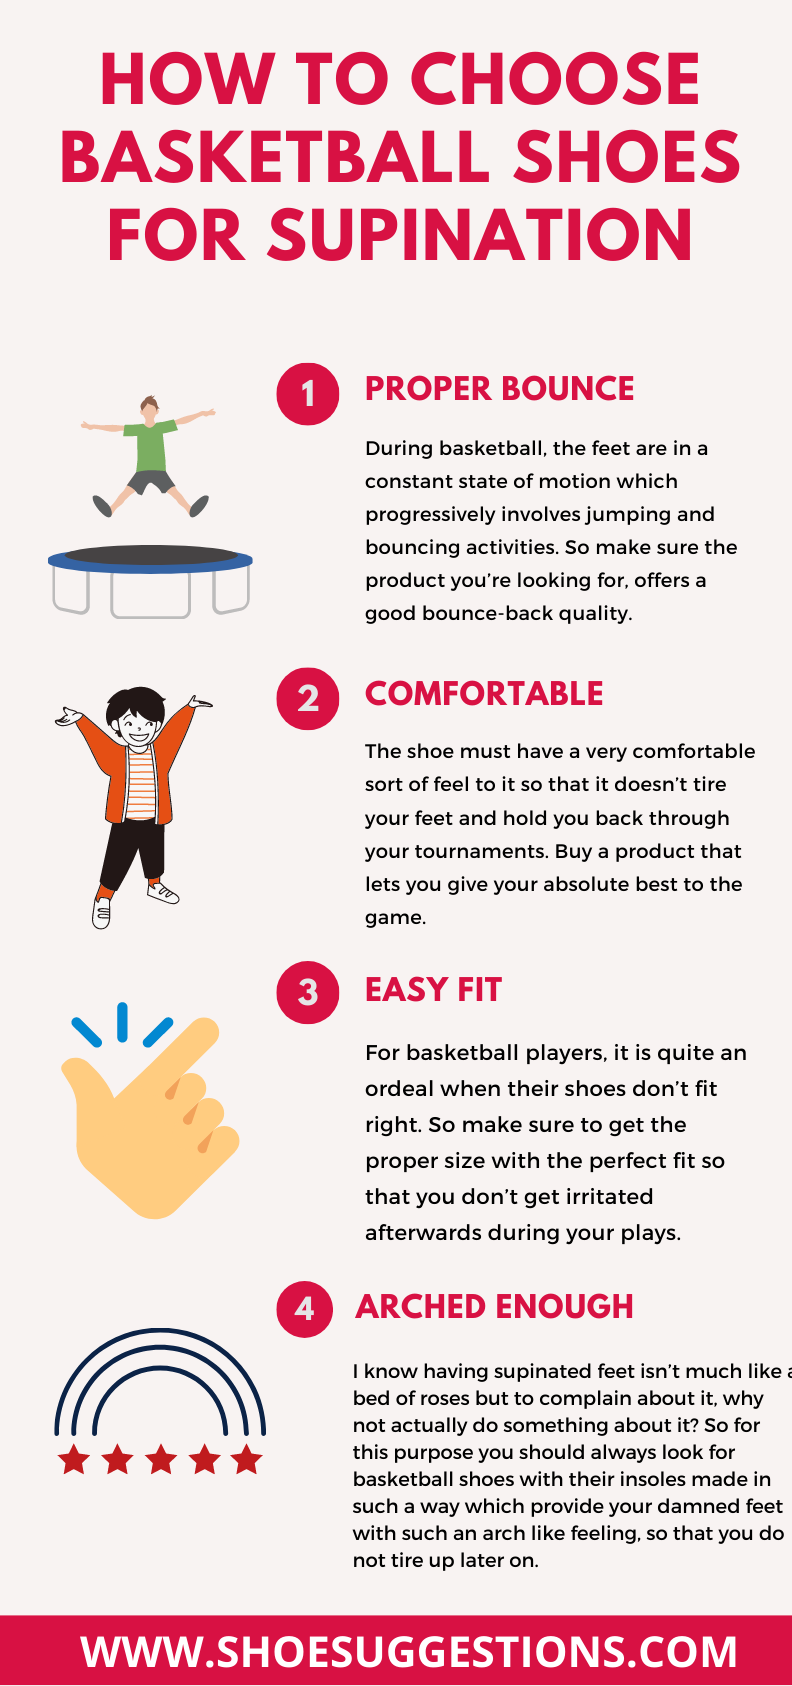 Hoe to choose basketball shoes for supination